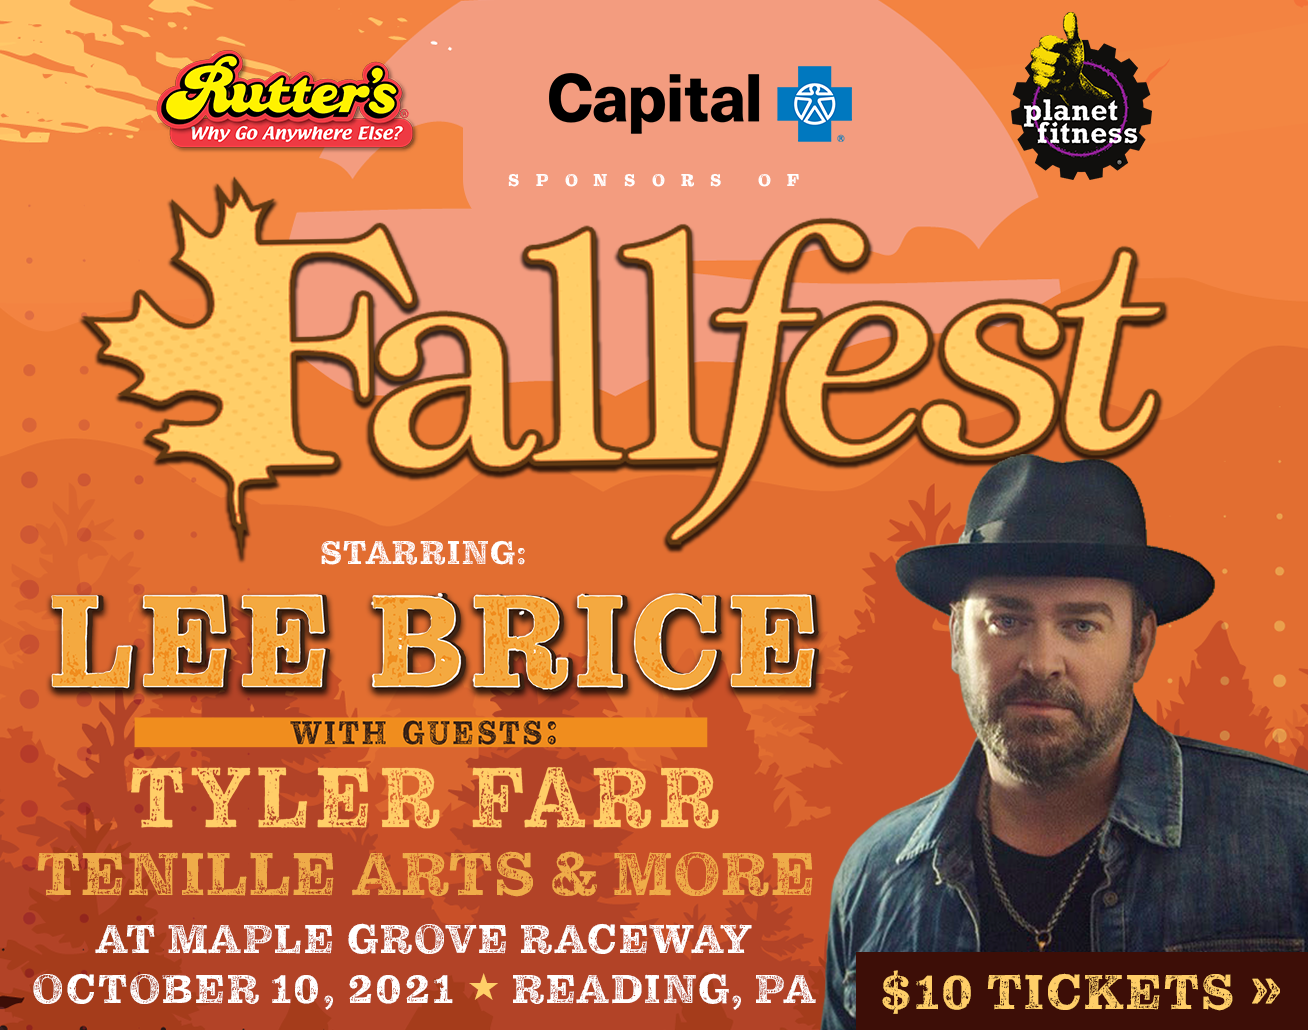 Fallfest Country Music Festival on October 10th at Maple Grove Raceway